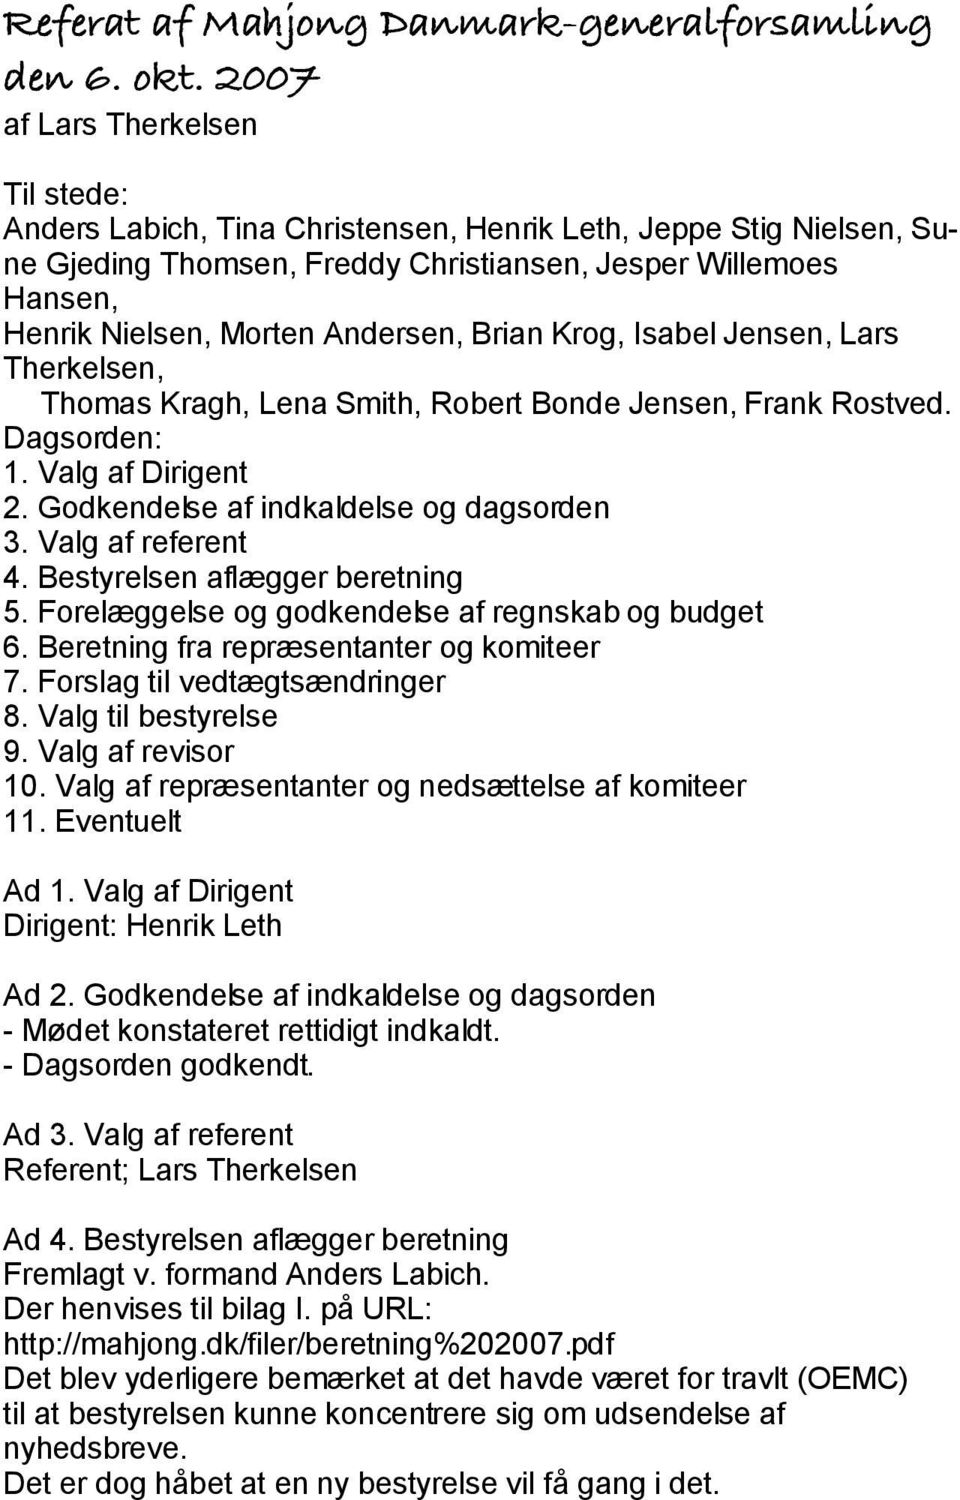 Andersen, Brian Krog, Isabel Jensen, Lars Therkelsen, Thomas Kragh, Lena Smith, Robert Bonde Jensen, Frank Rostved. Dagsorden: 1. Valg af Dirigent 2. Godkendelse af indkaldelse og dagsorden 3.